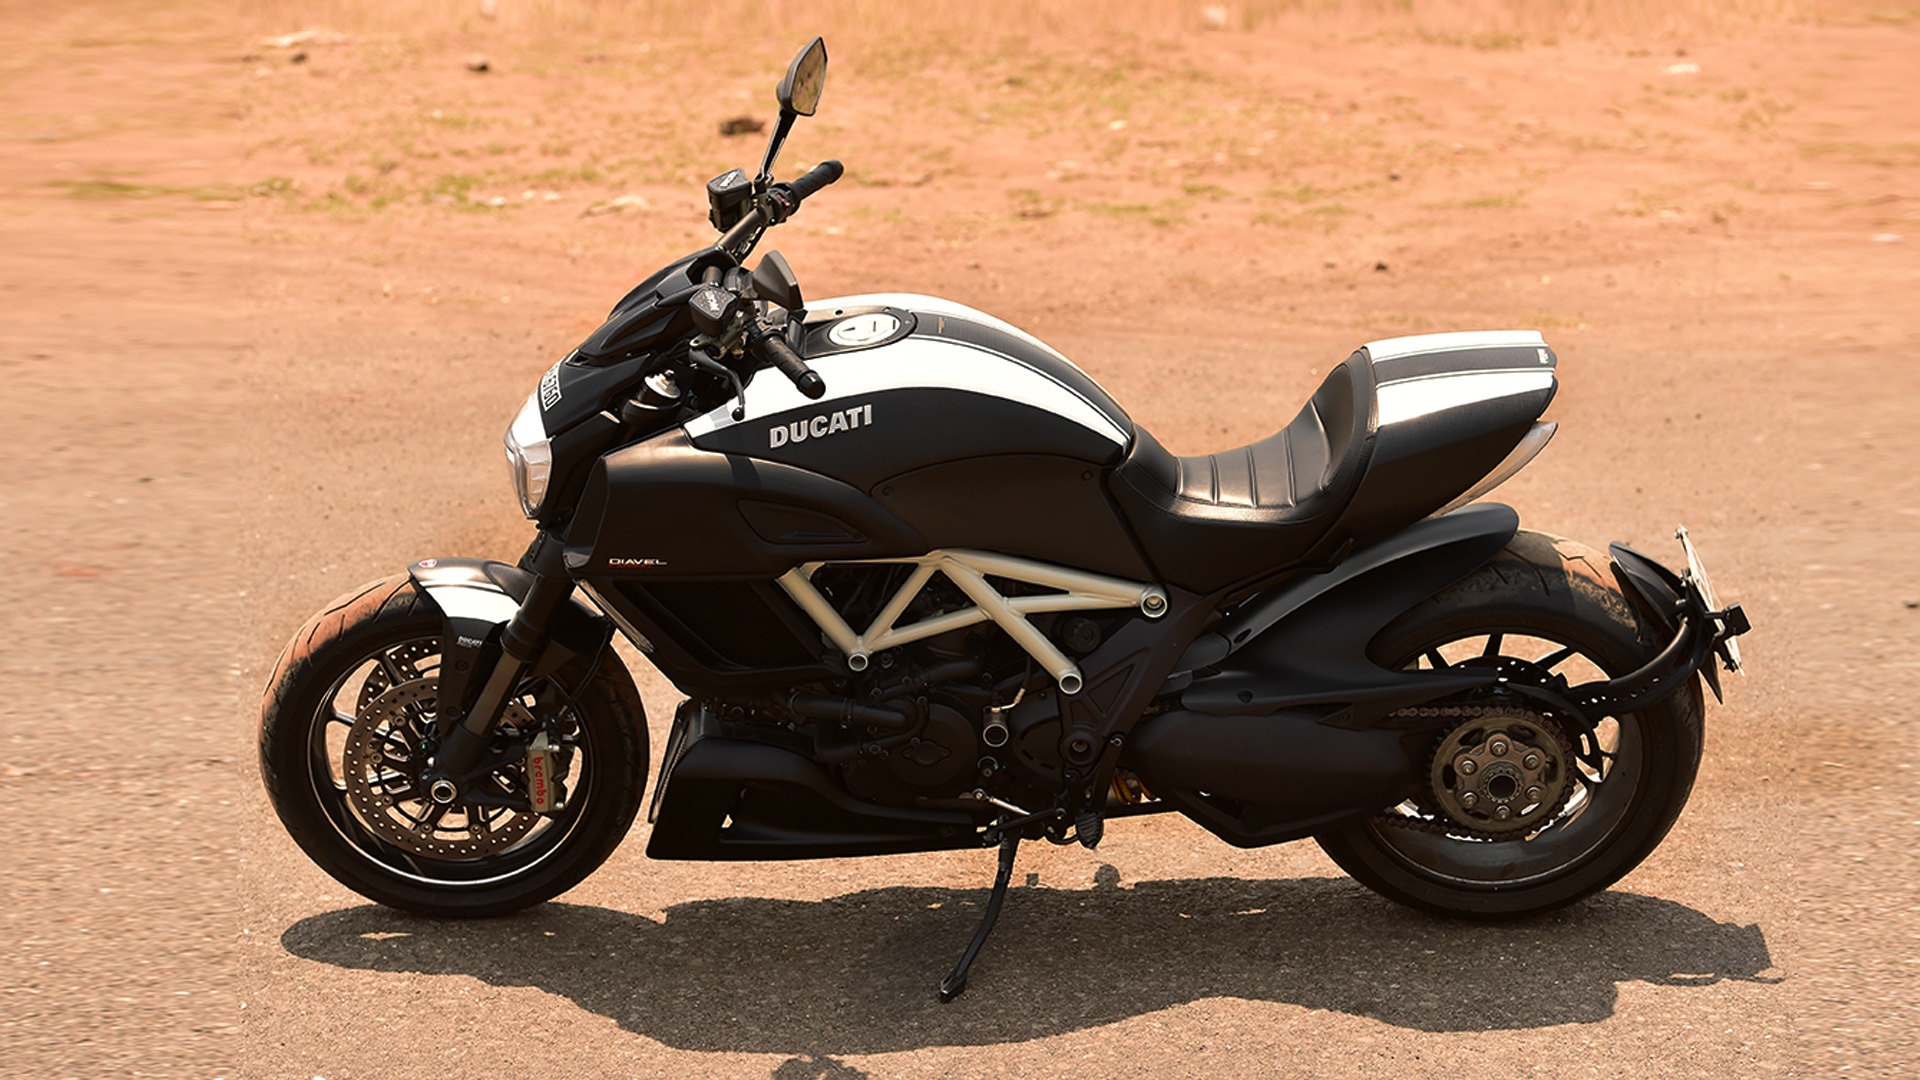 ducati diavel 2015 carbon price mileage reviews. Black Bedroom Furniture Sets. Home Design Ideas